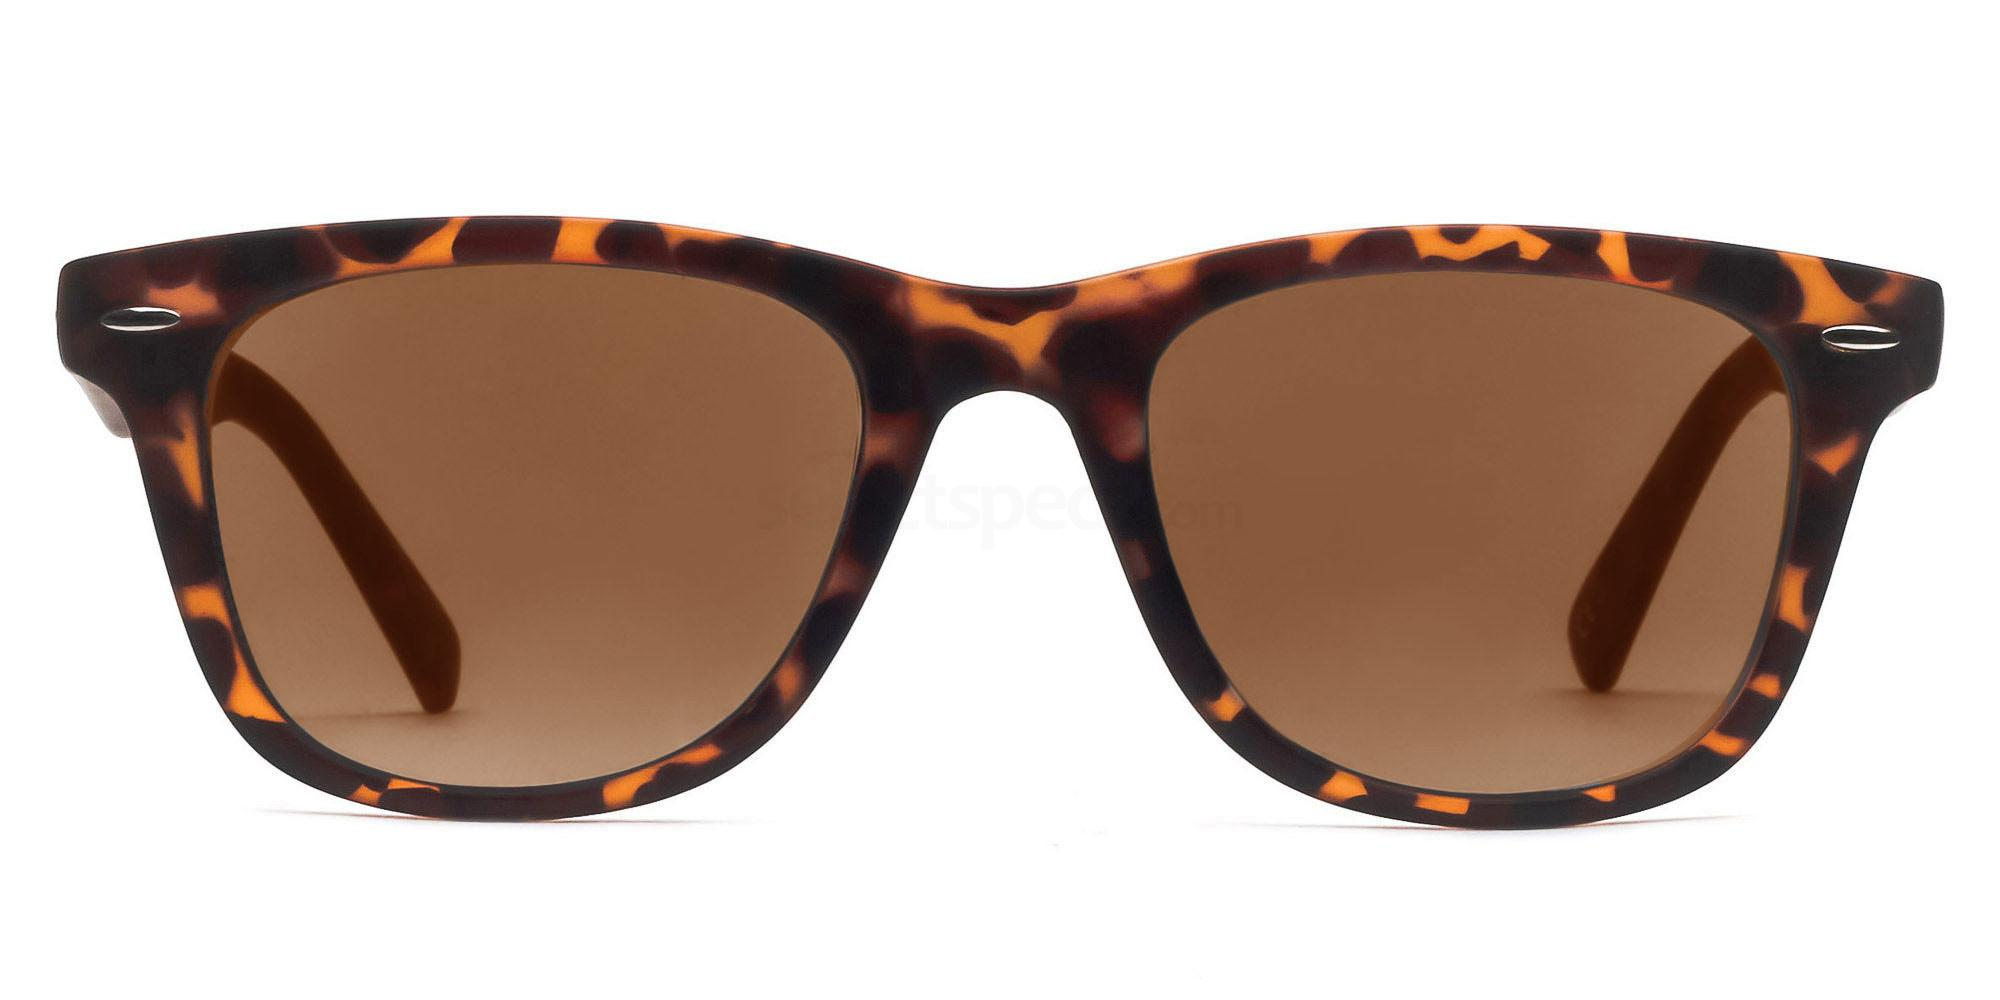 C9 8121 - Tortoise (Sunglasses) Sunglasses, Savannah